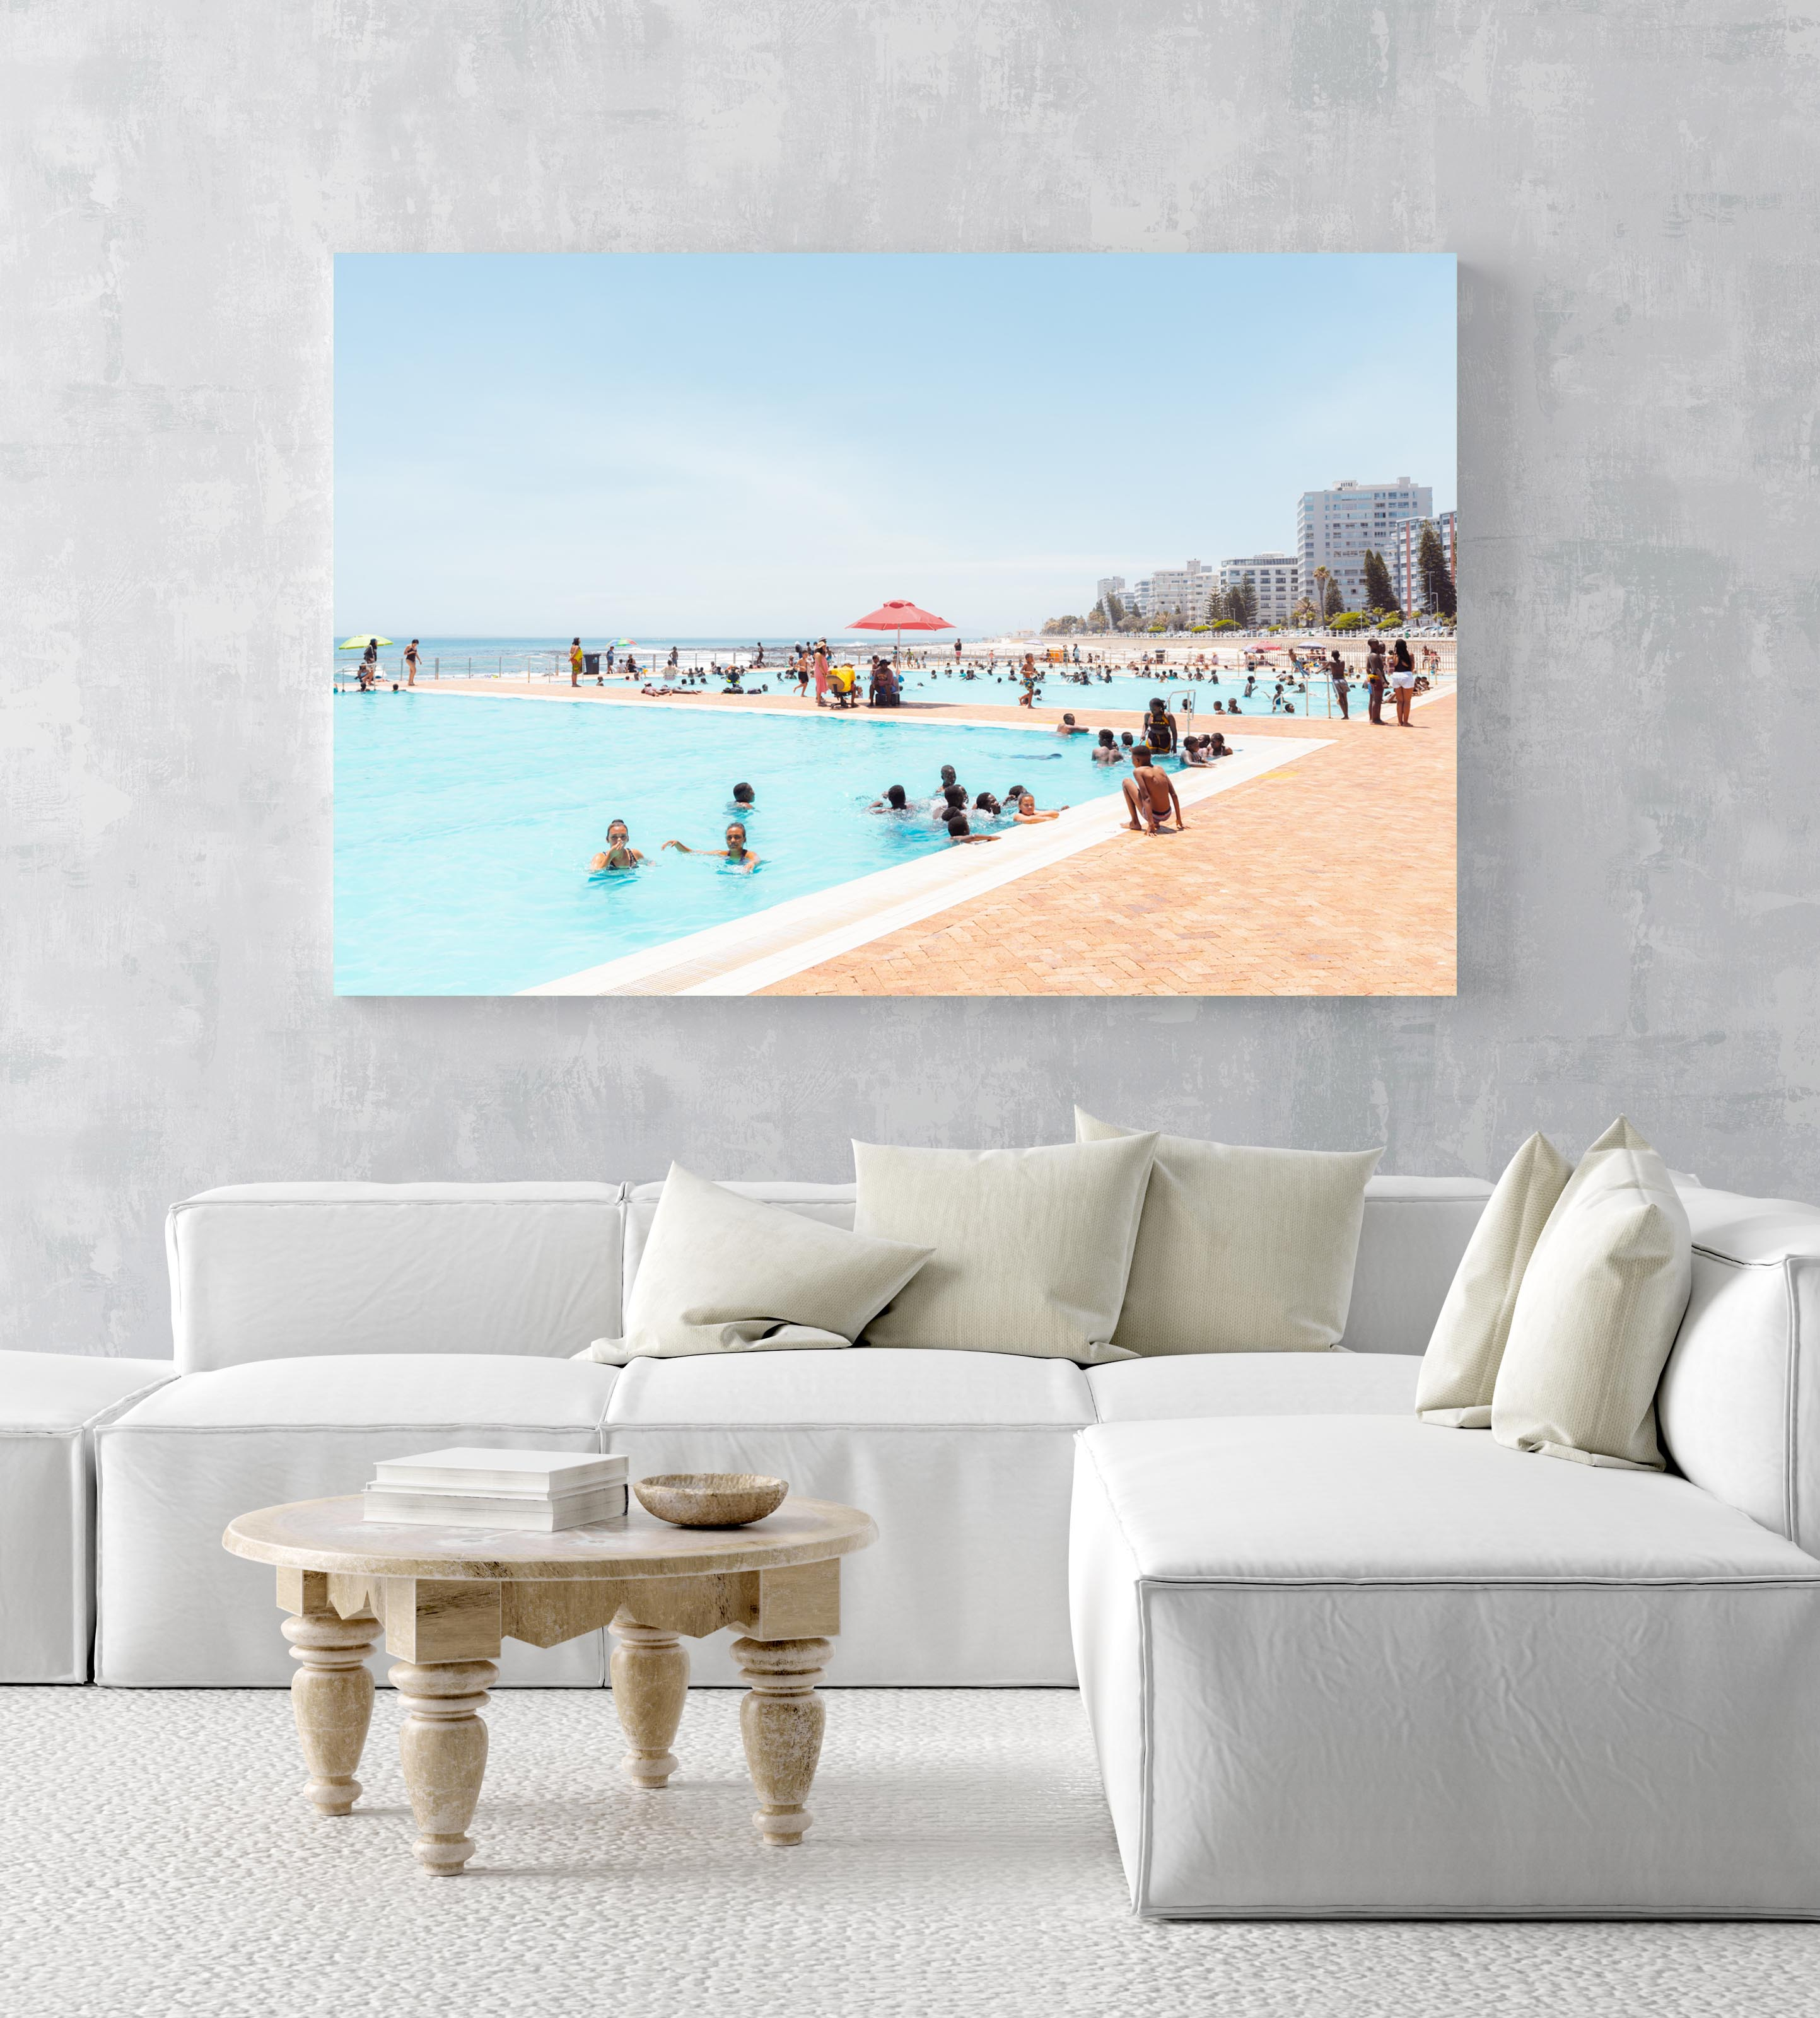 Lots of people in sea point pools on a hot day in cape town in an acrylic/perspex frame